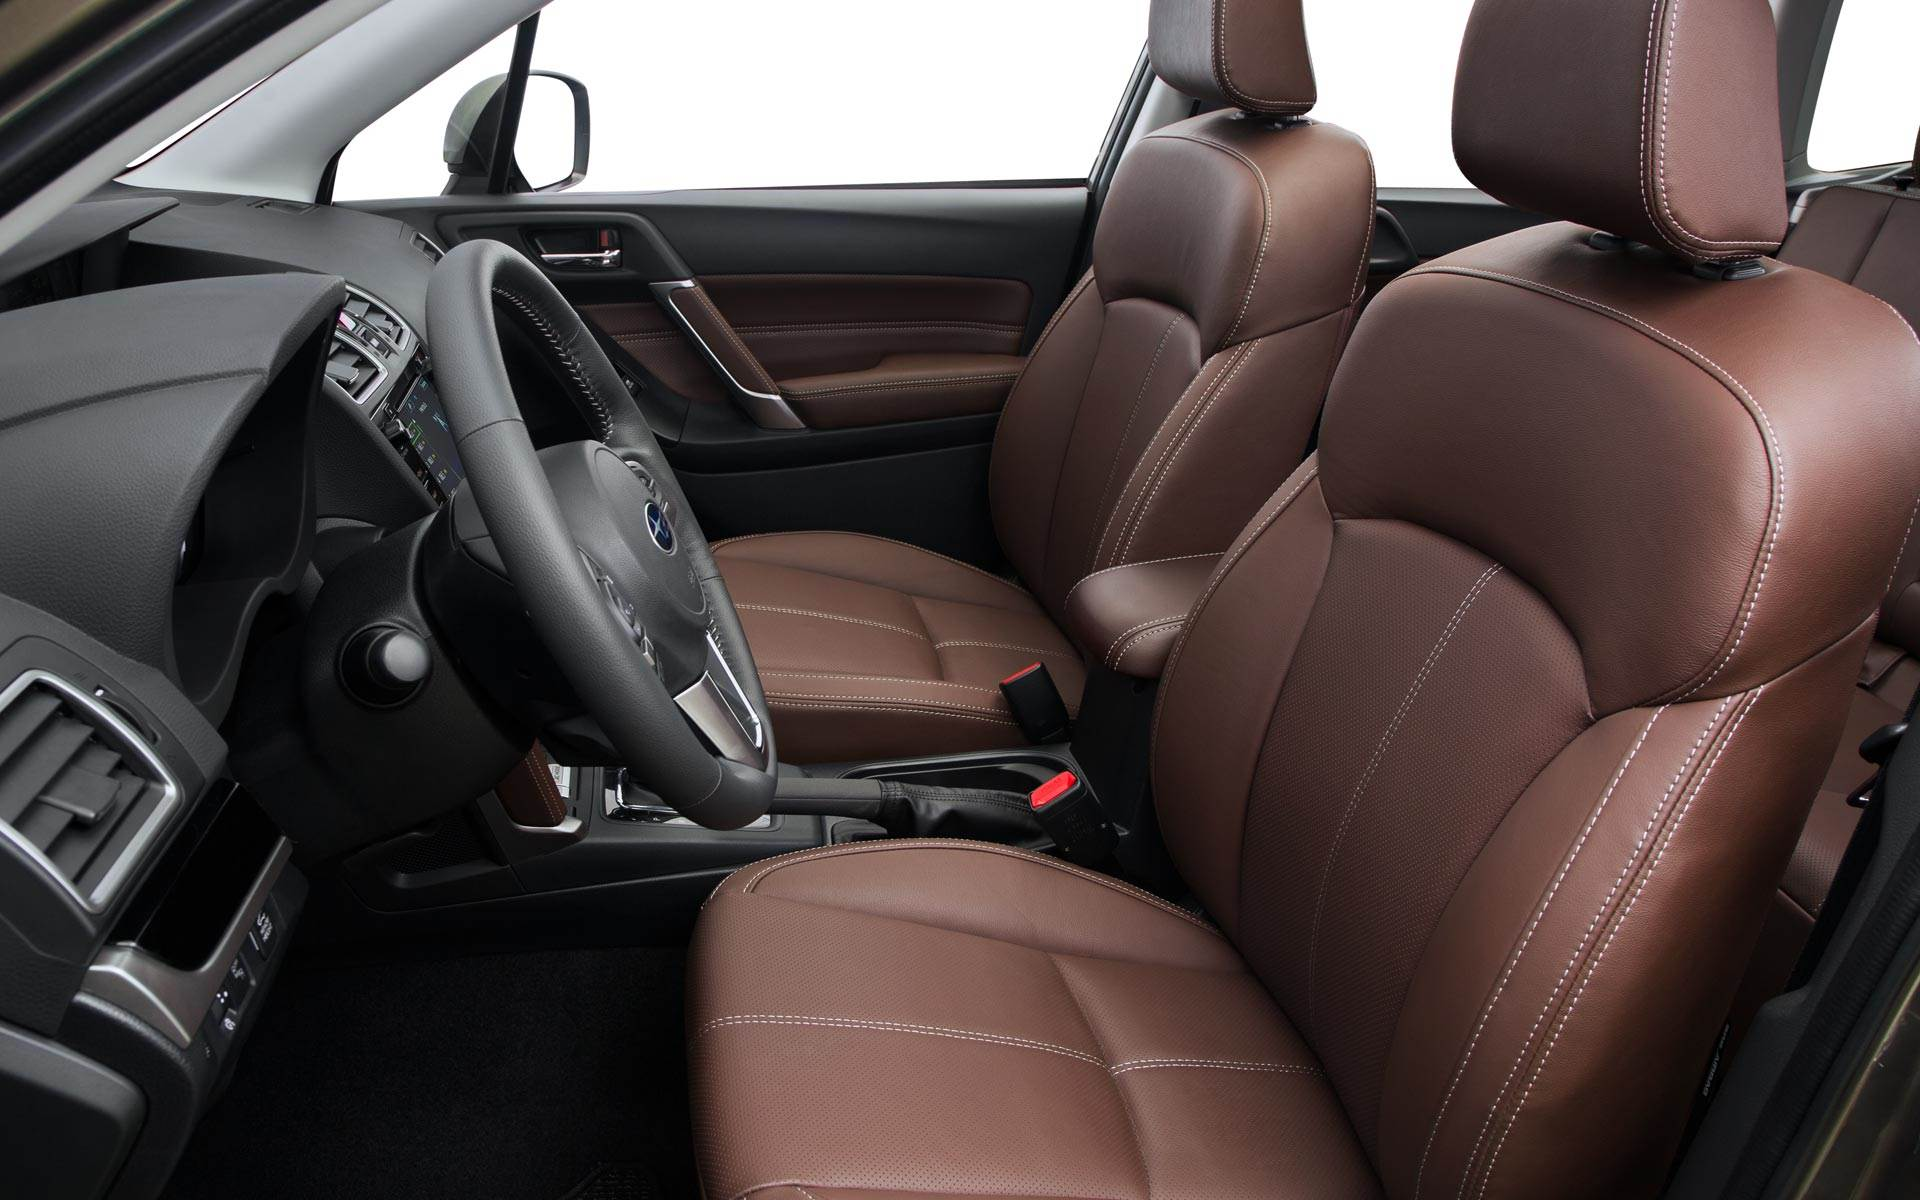 Subaru Forester Prices Lease Finance Offers La Crosse Wi Fuel Filter New Interior Features